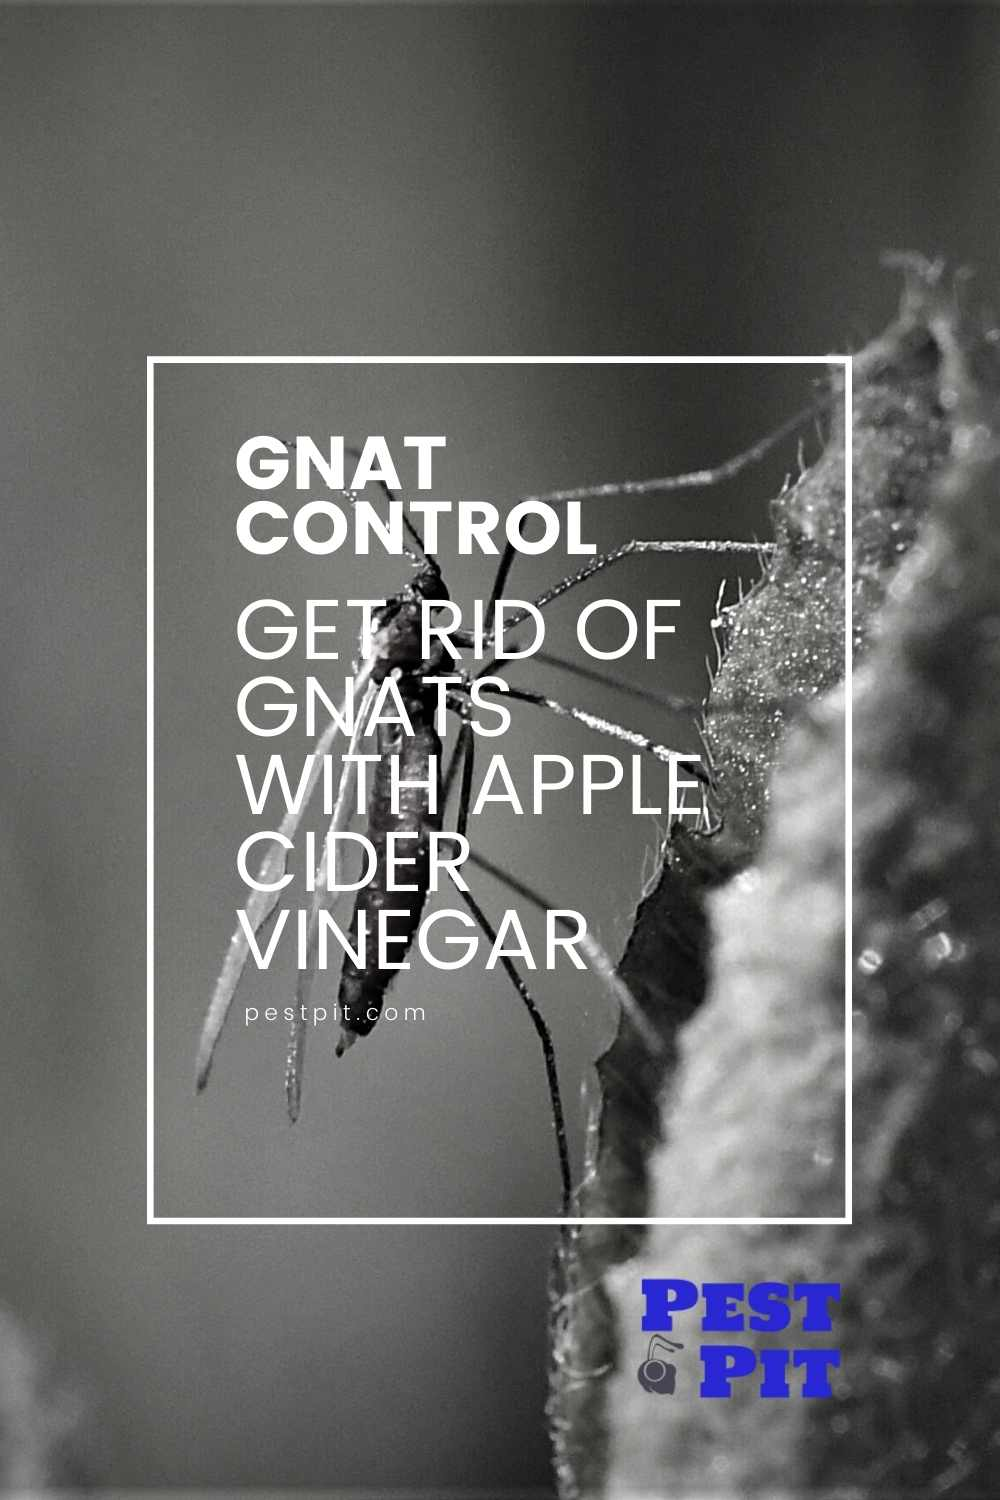 Get Rid of Gnats With Apple Cider Vinegar